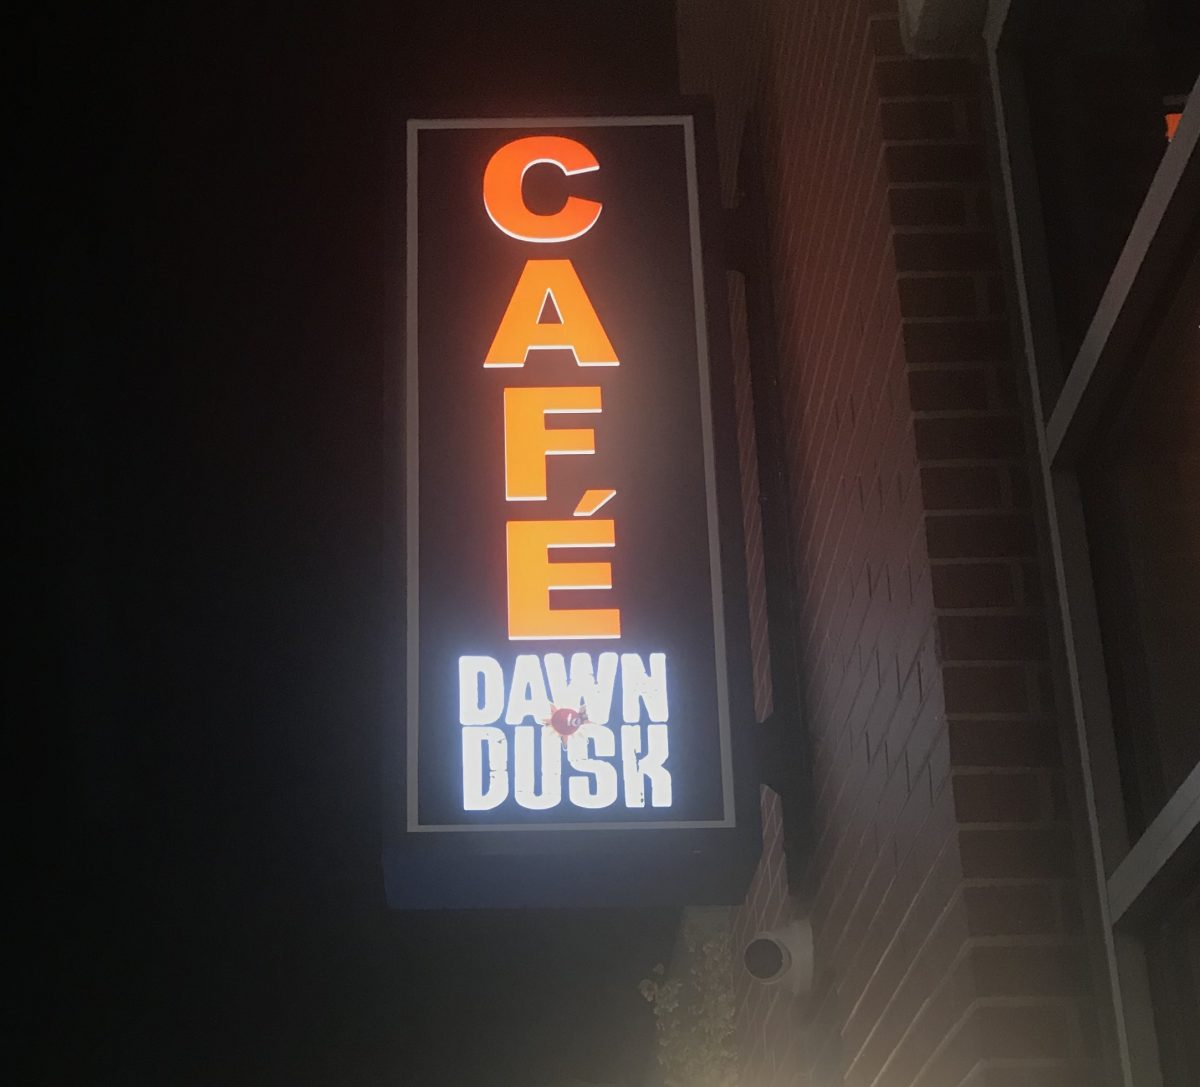 Cafe Dawn to Dusk at night